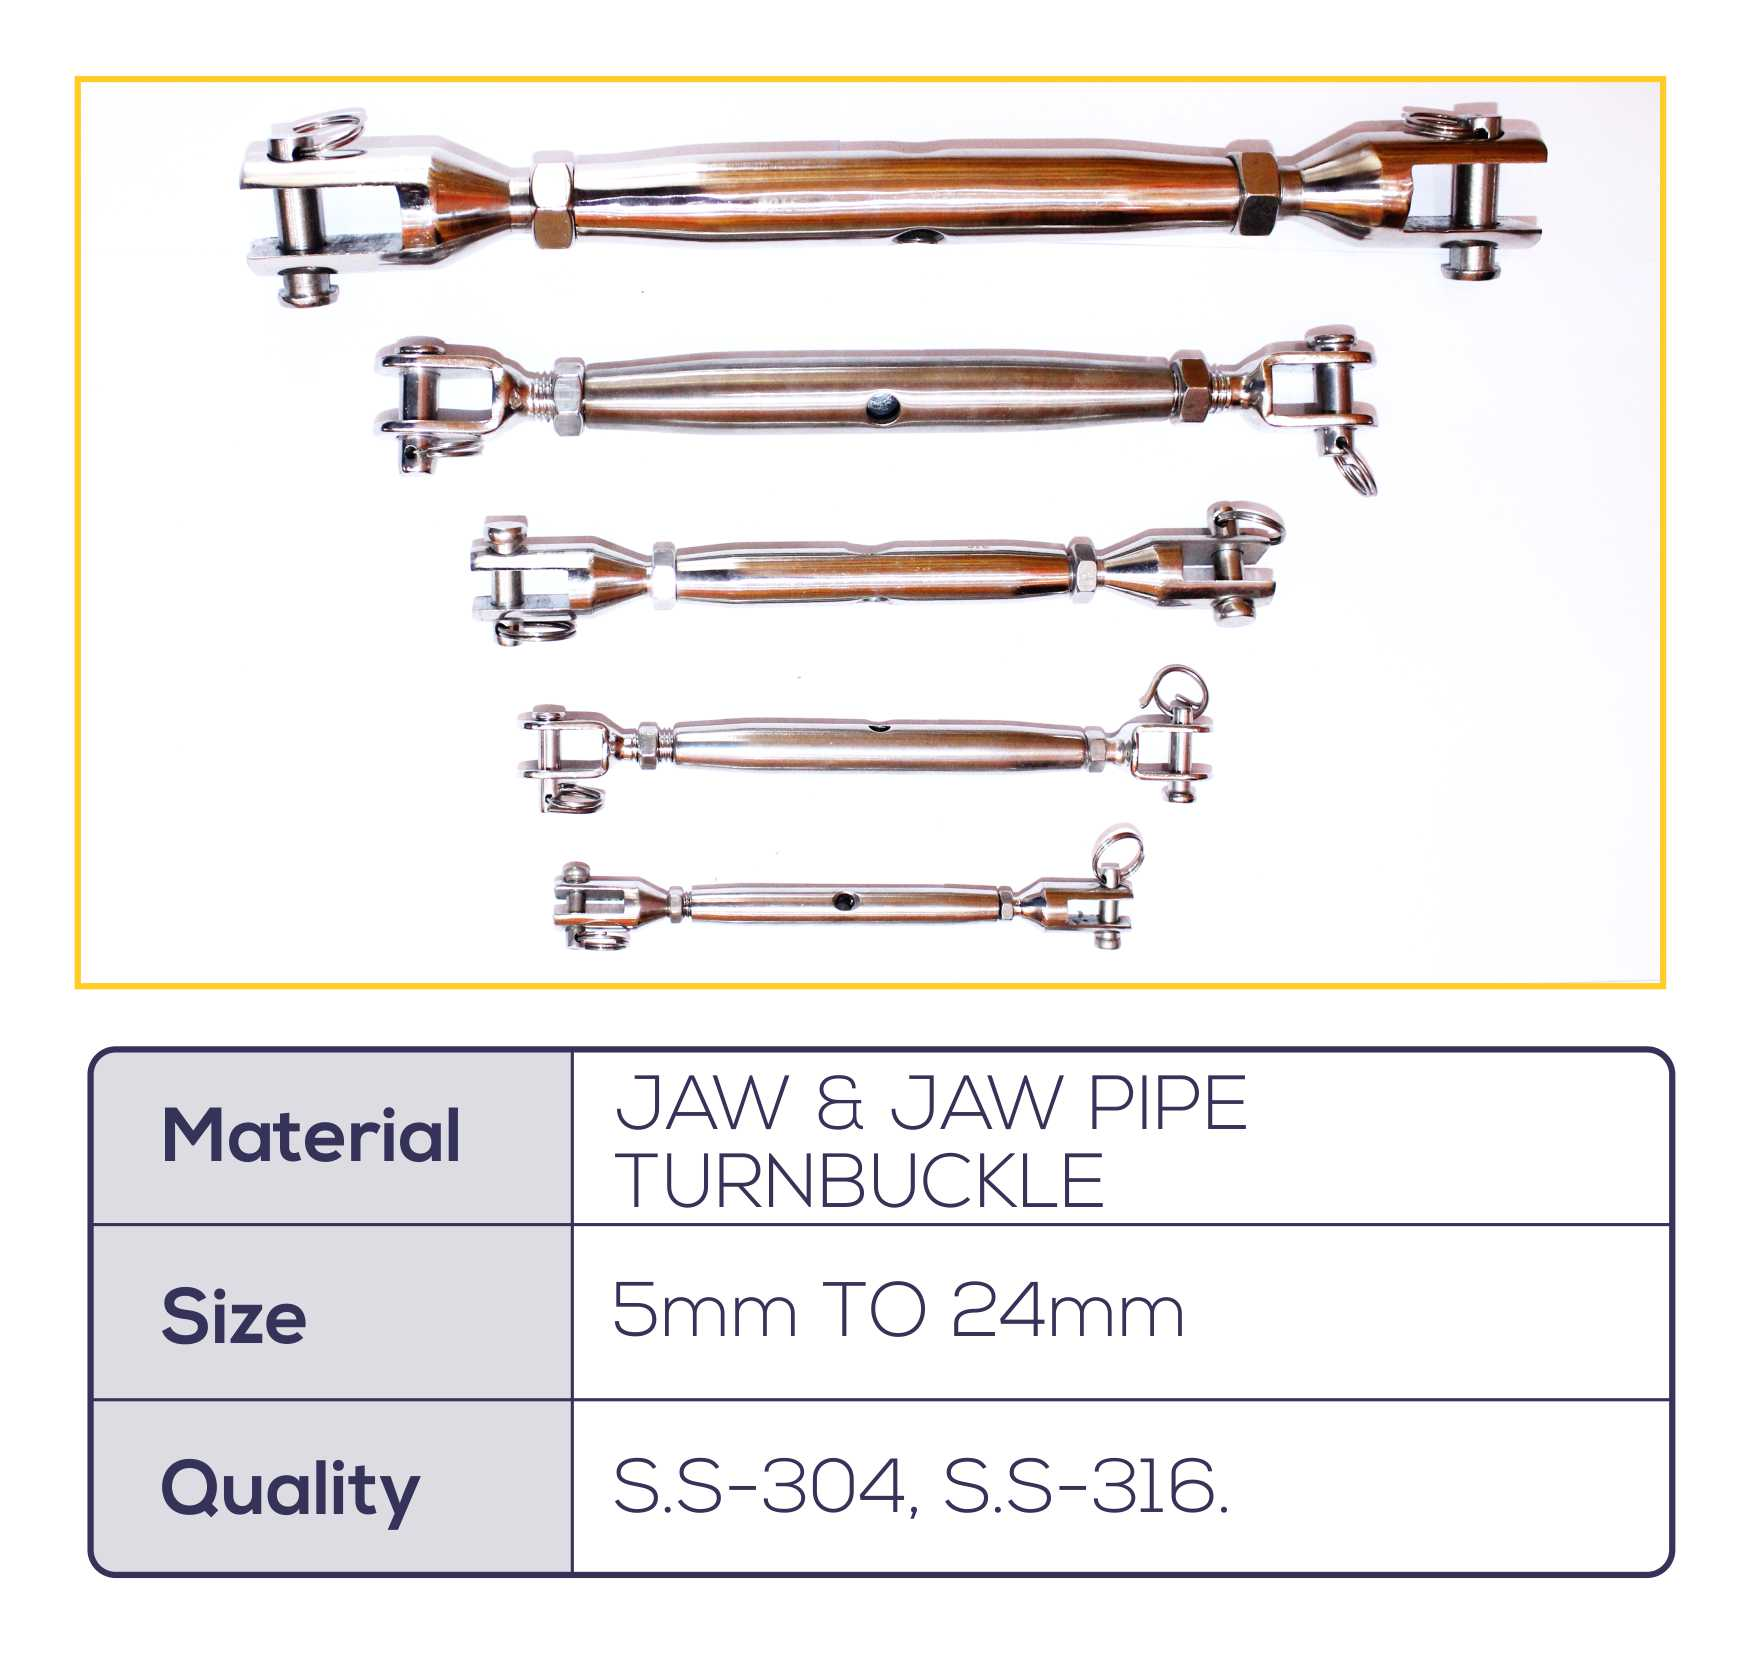 JAW & JAW PIPE TURNBUCKLE